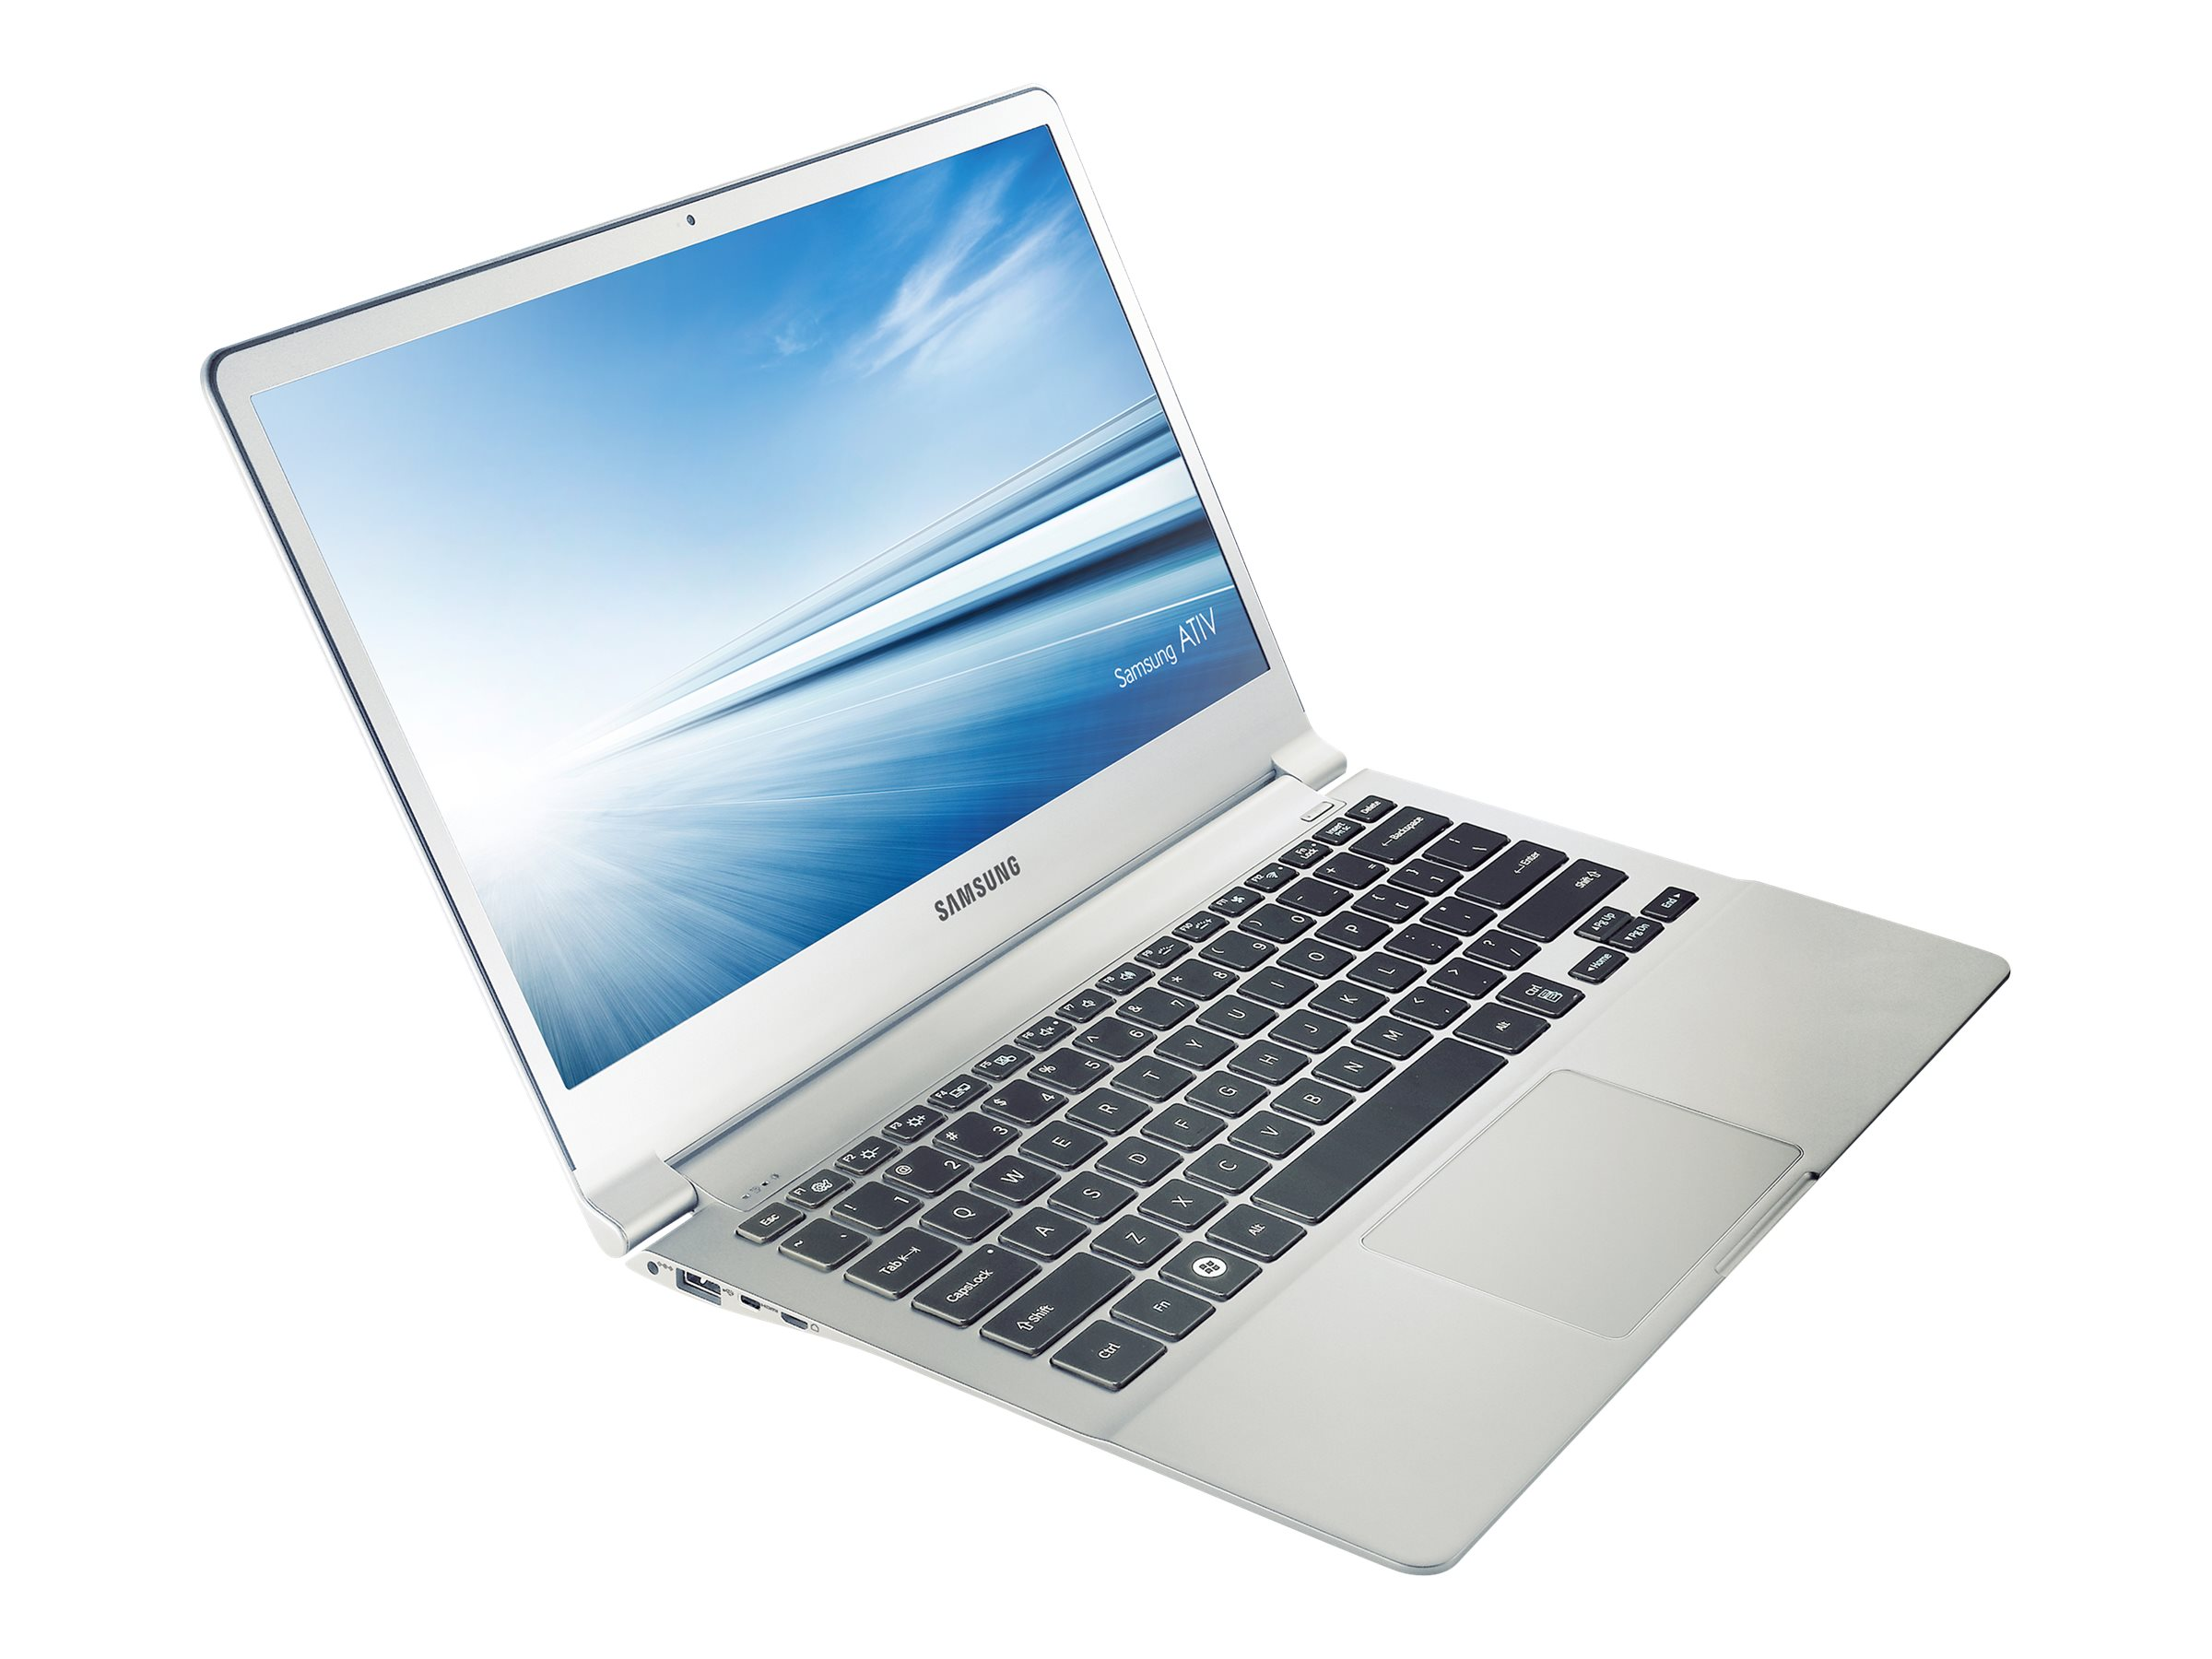 Samsung ATIV Book 9 2.2GHz Core i5 13.3in display, NP900X3K-S02US, 18458271, Notebooks